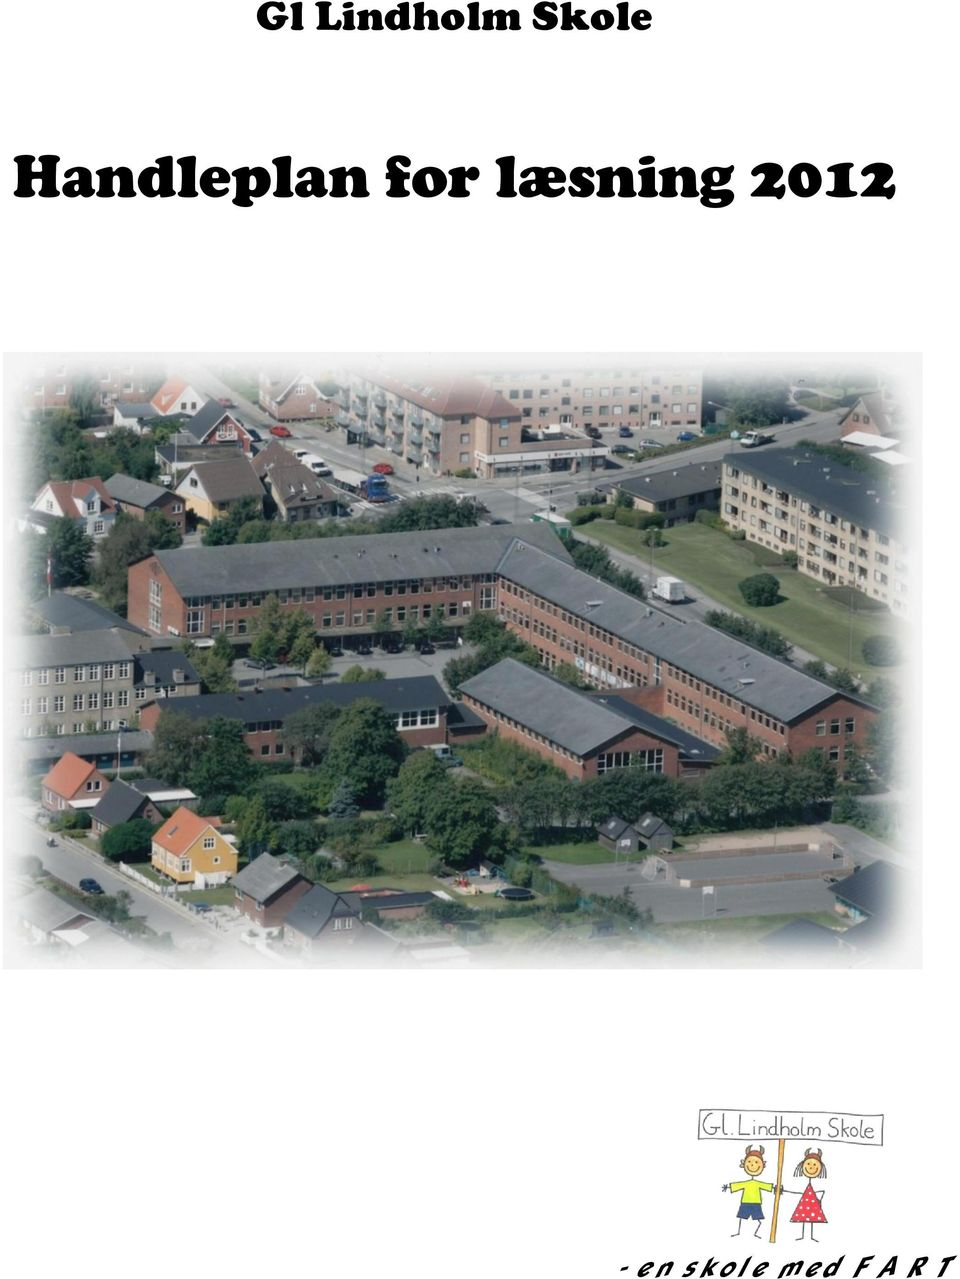 for læsning 2012